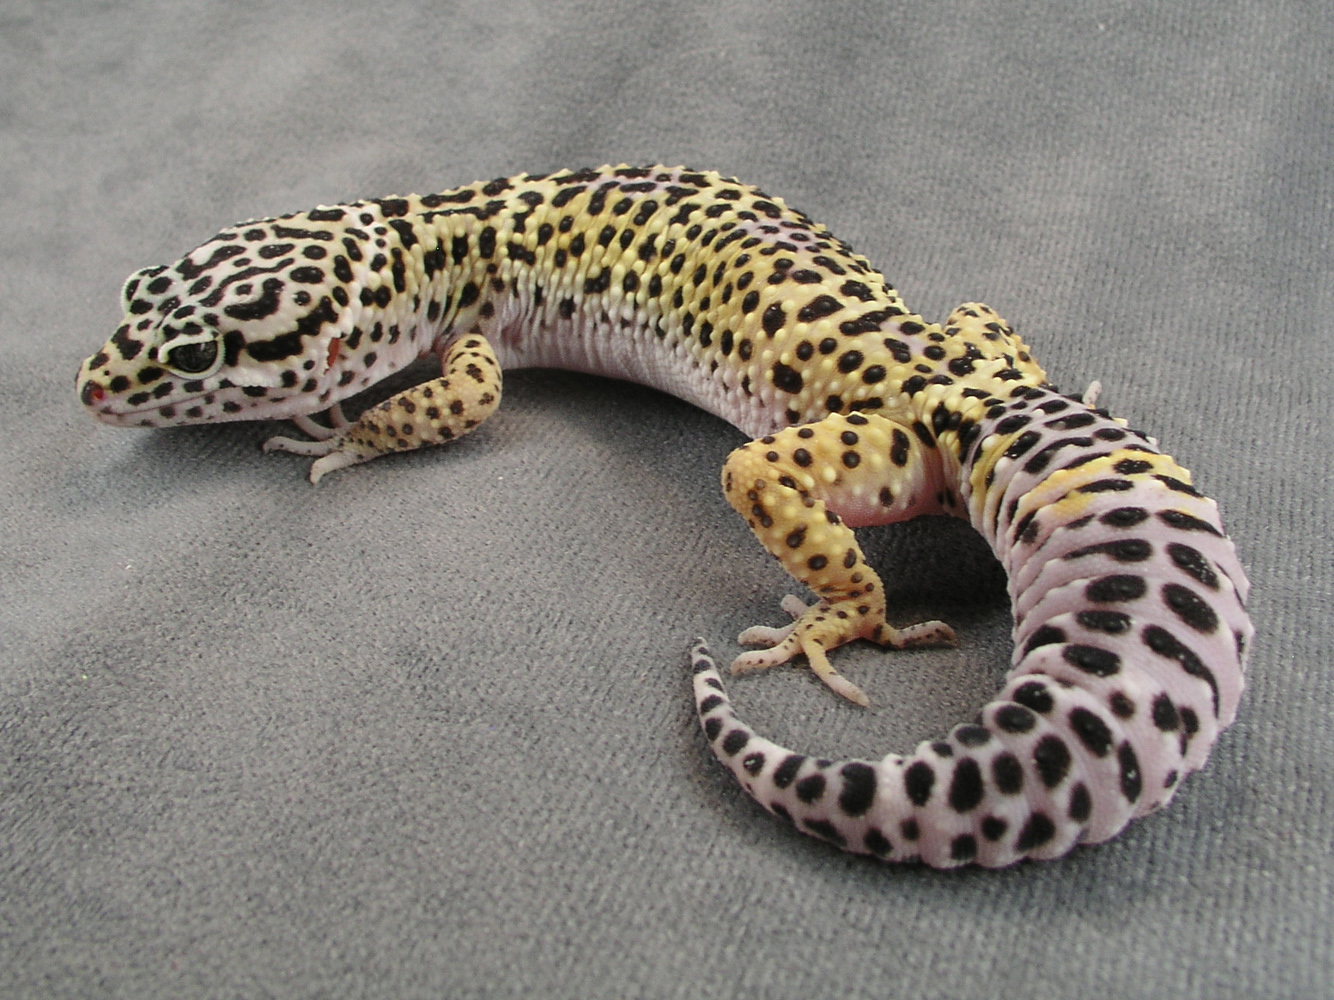 Gecko Pictures 11